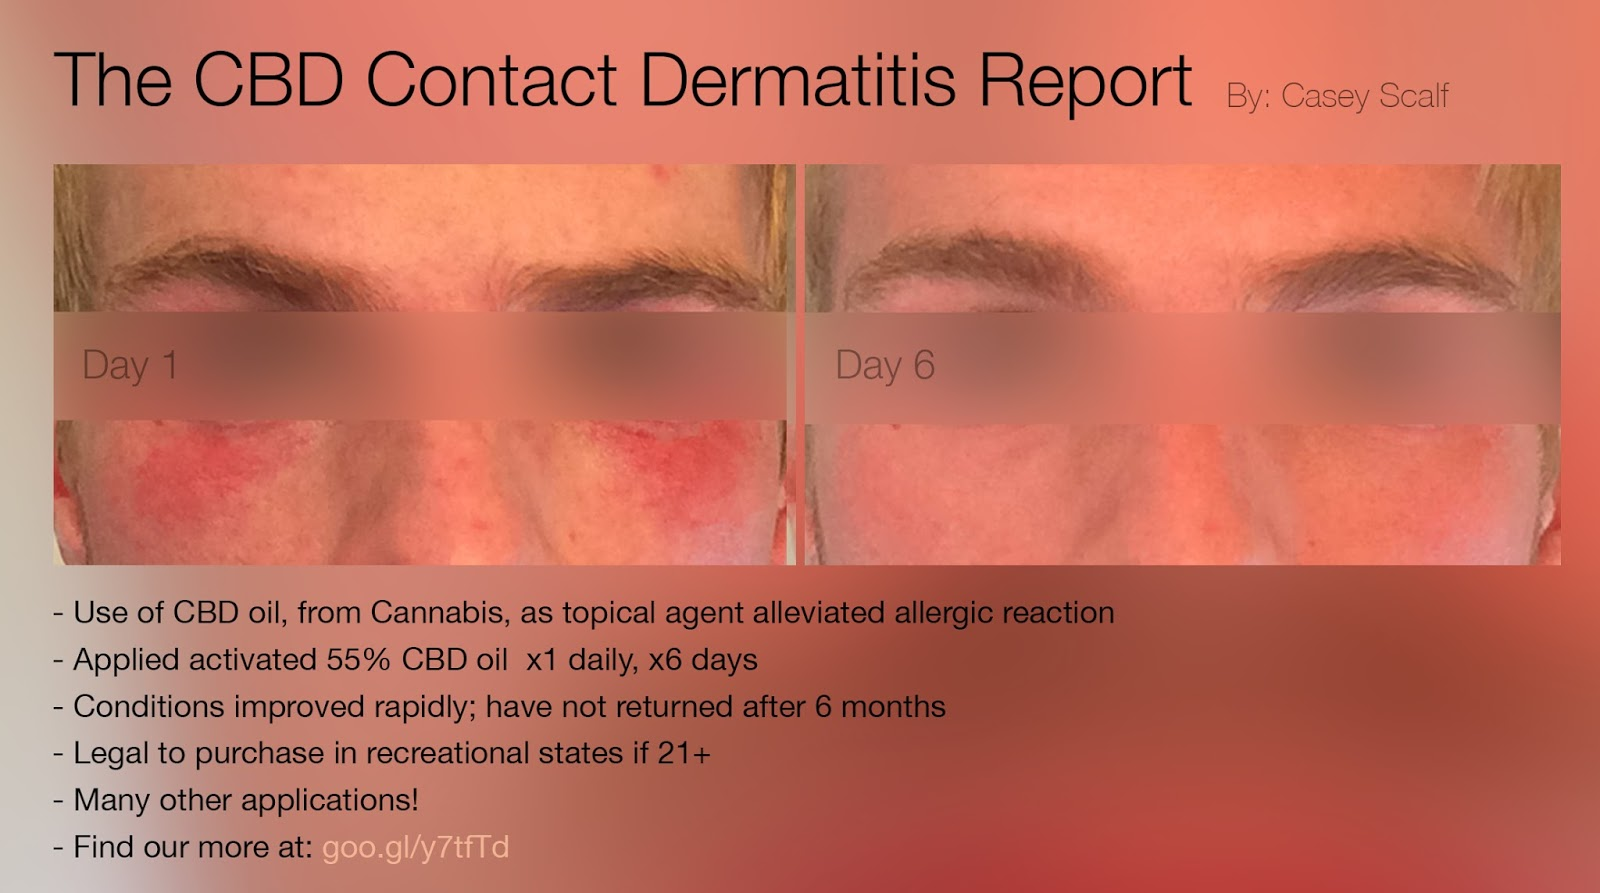 Commune to Humanity: The CBD Oil Contact Dermatitis Report